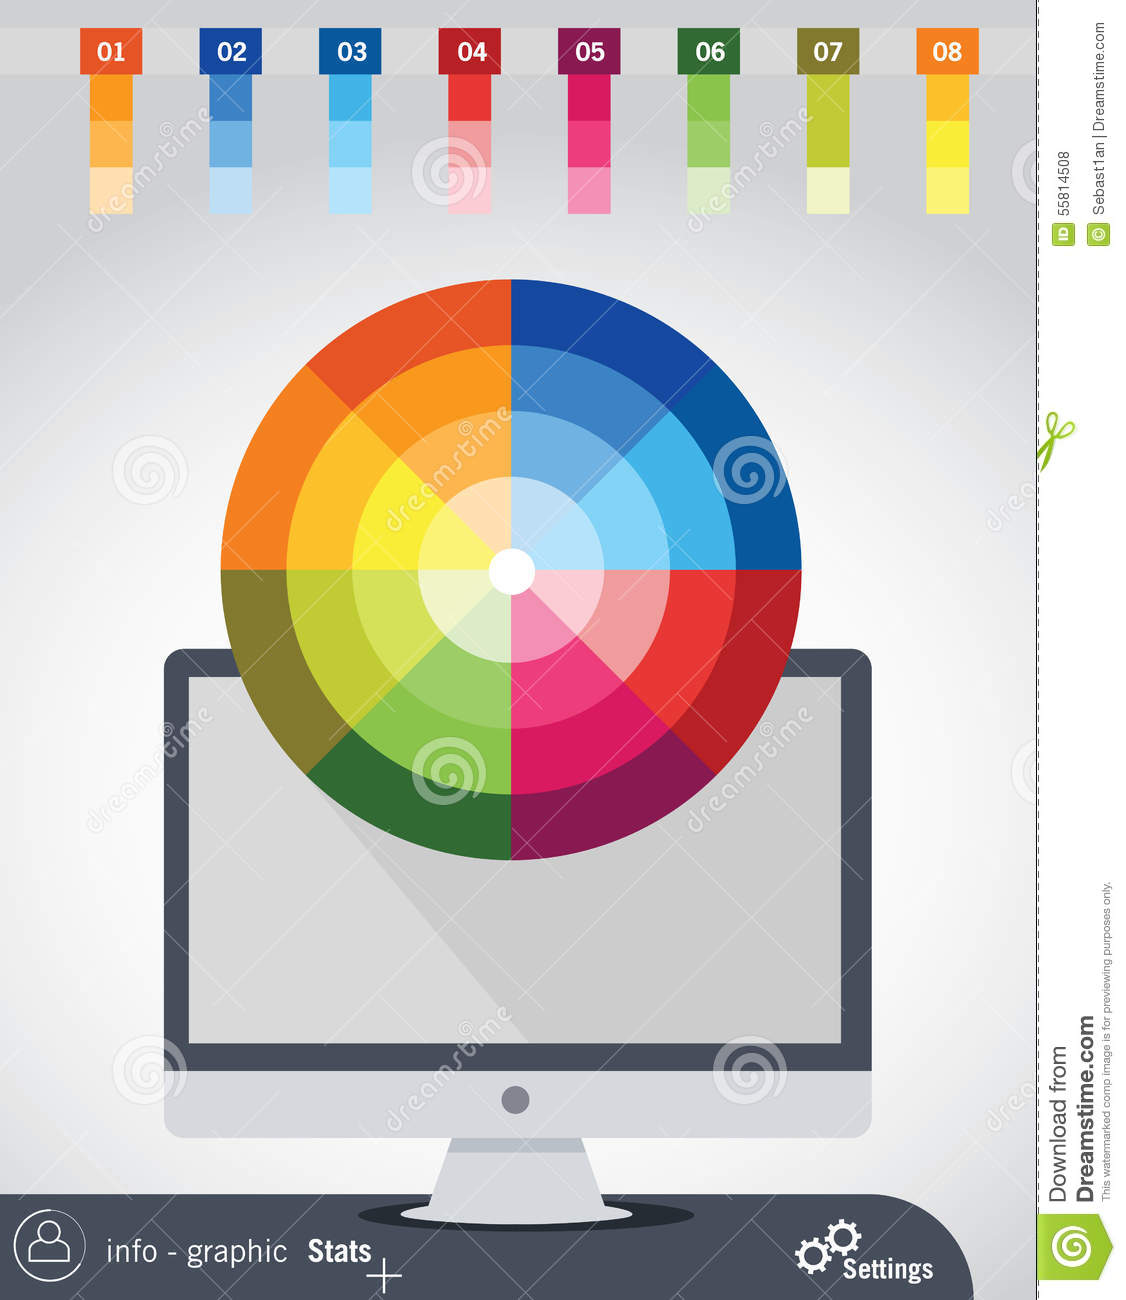 Color Wheel Stock Image 2419459